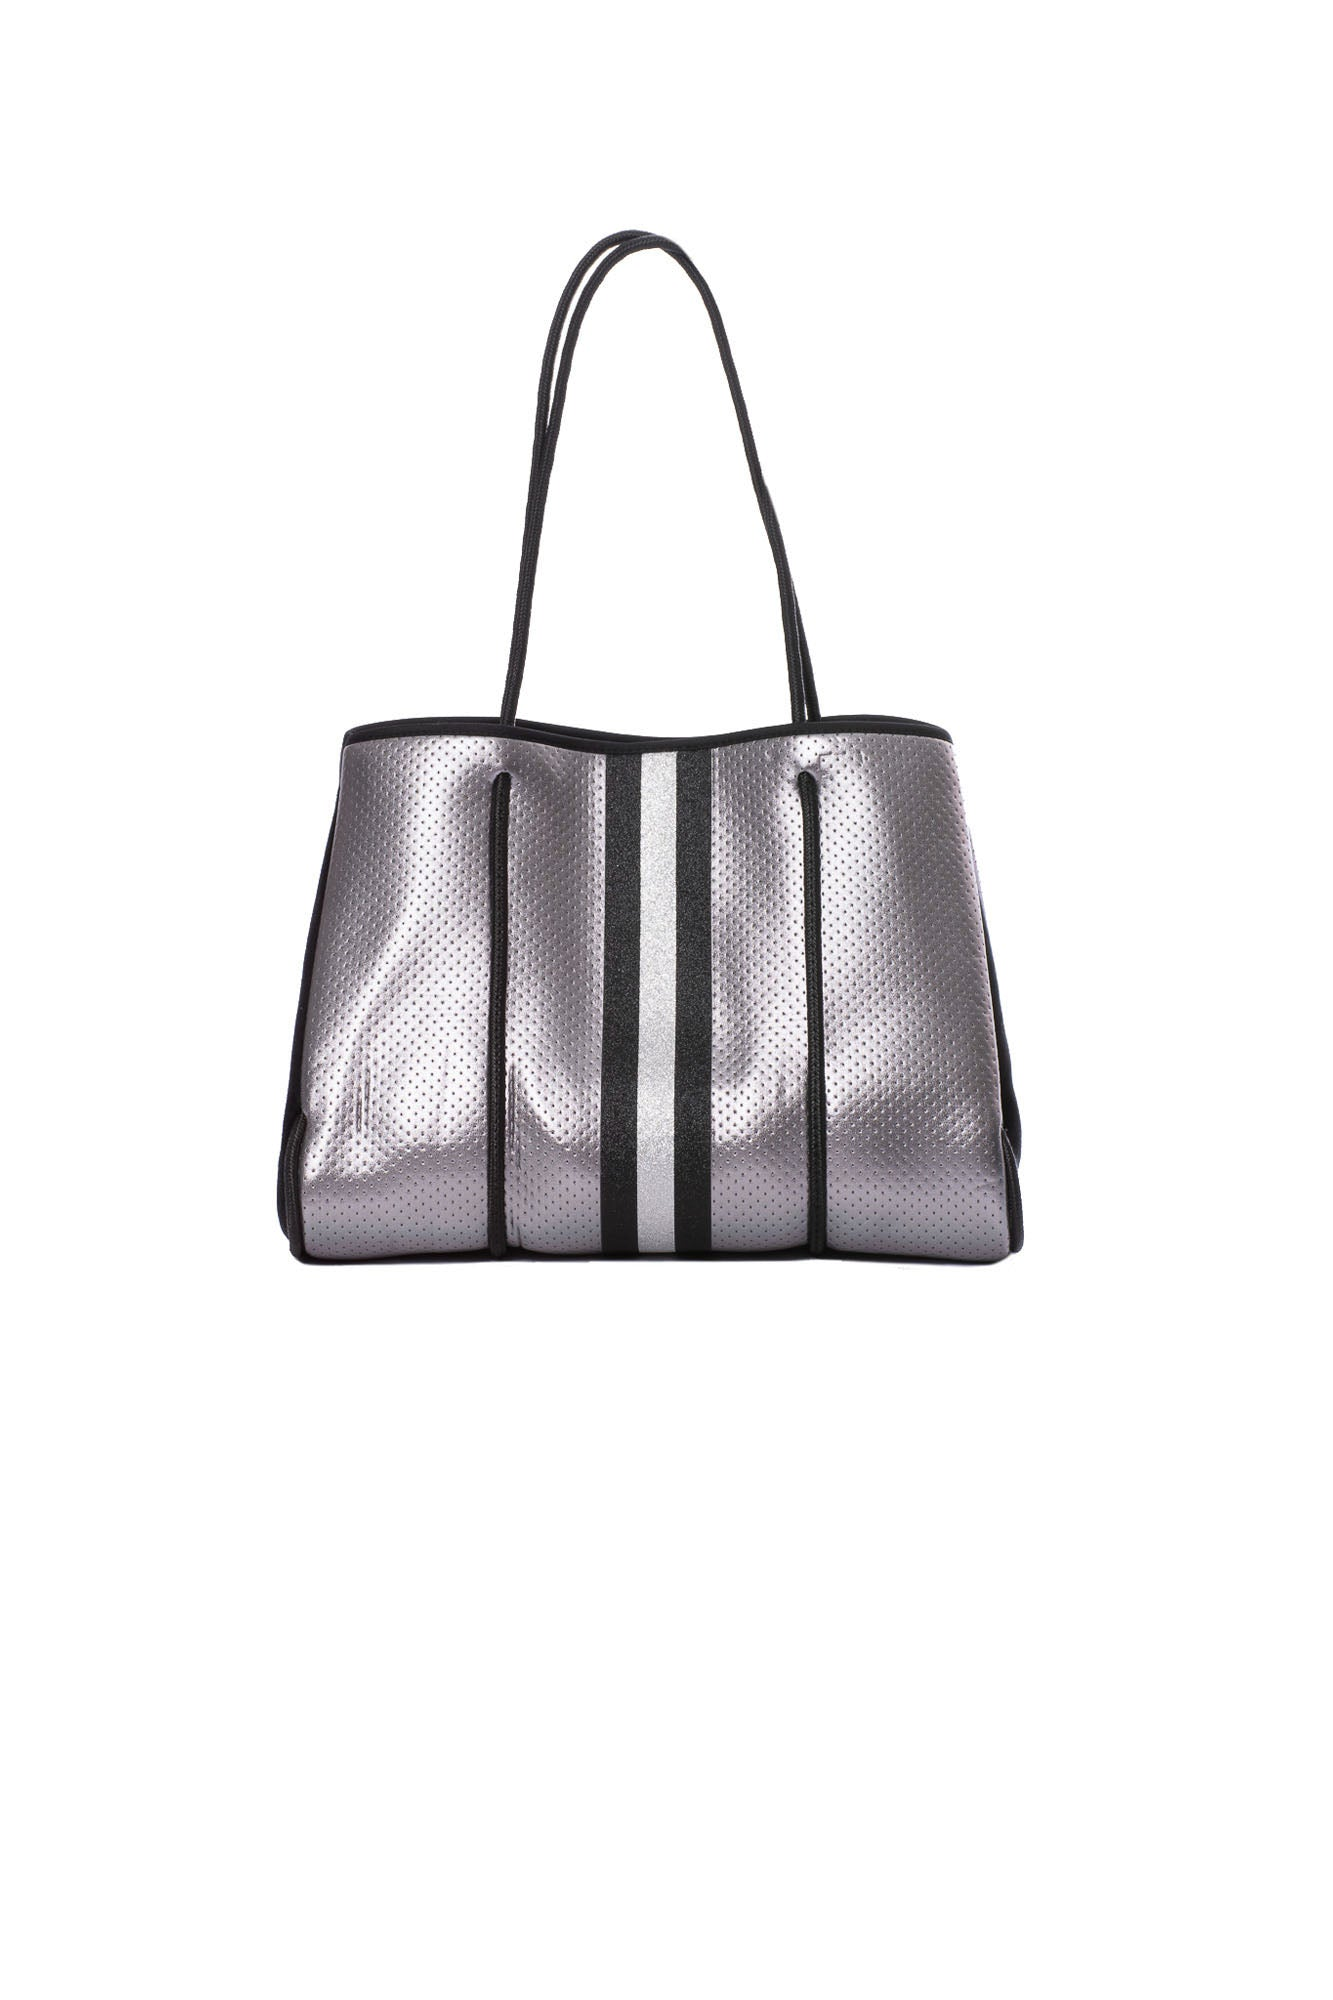 Haute Shore - Greyson Ace Neoprene Tote Bag w/Zipper Wristlet Inside (Ace, Pewter Metallic w/Black & White Stripe)